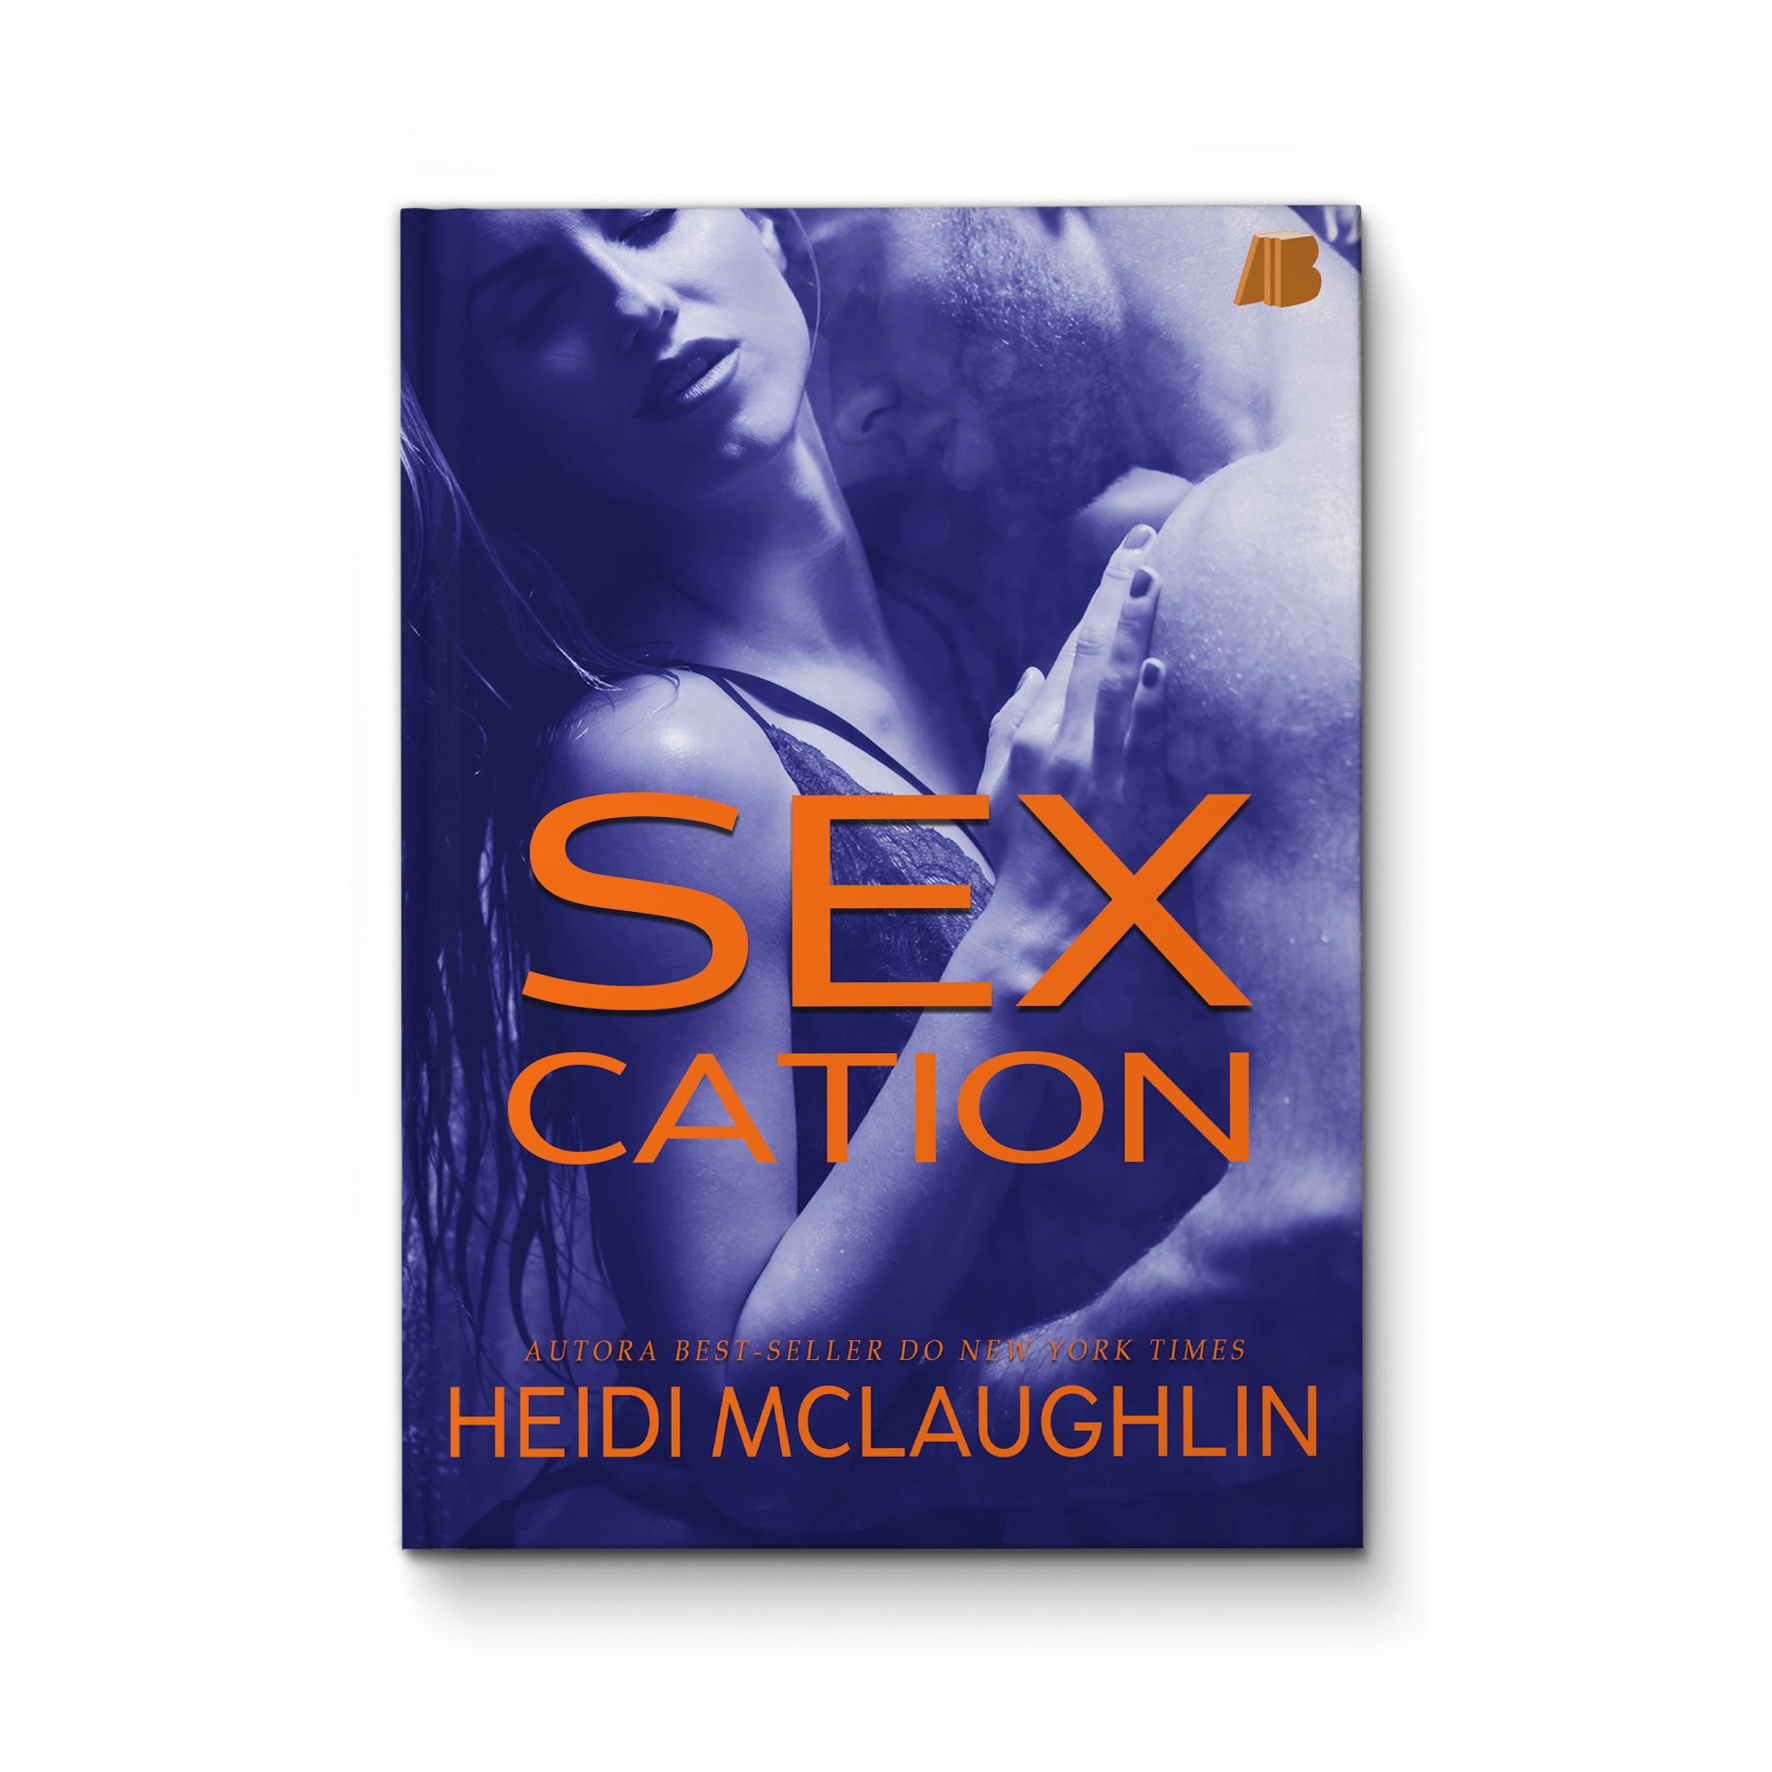 Sexcation – Heidi McLaughlin